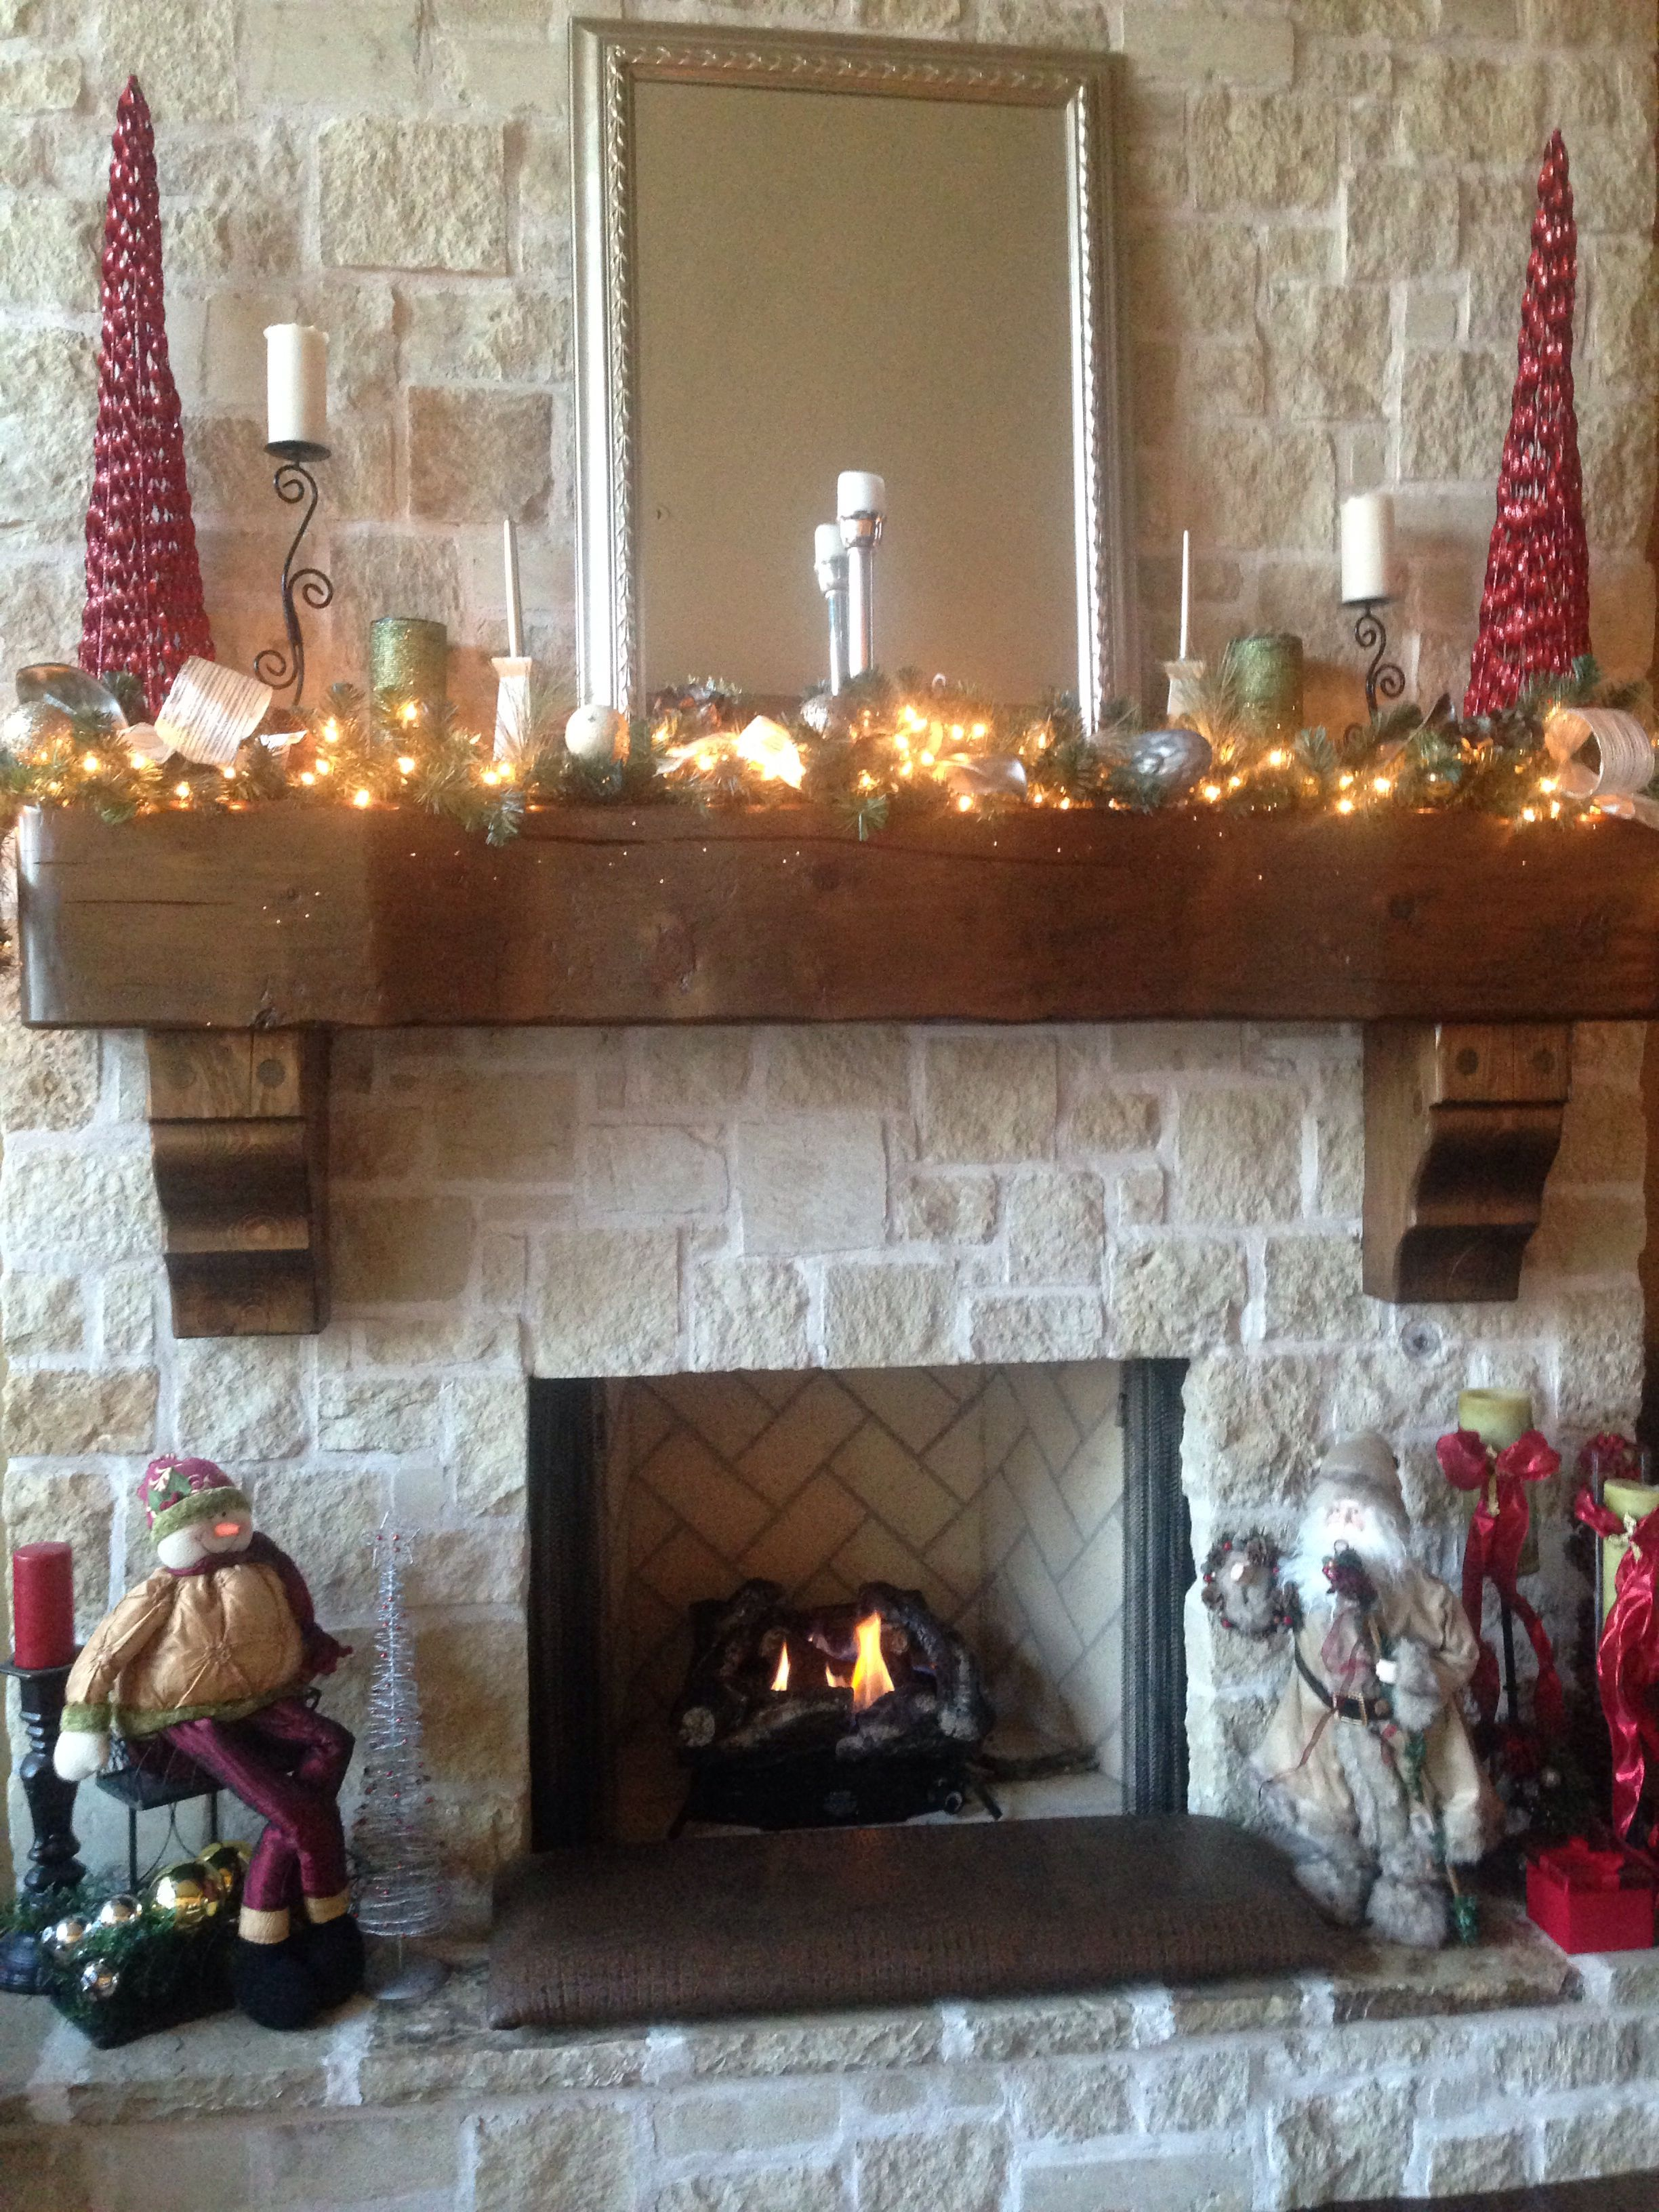 Our Christmas fireplace